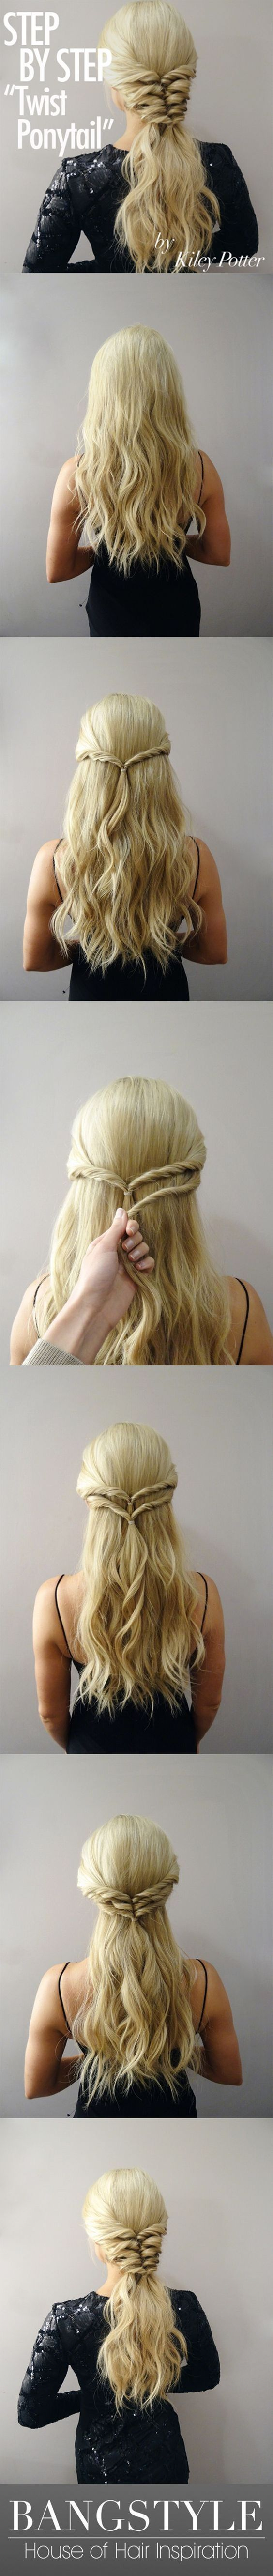 Easy hairstyles for school hairstyle pinterest latest